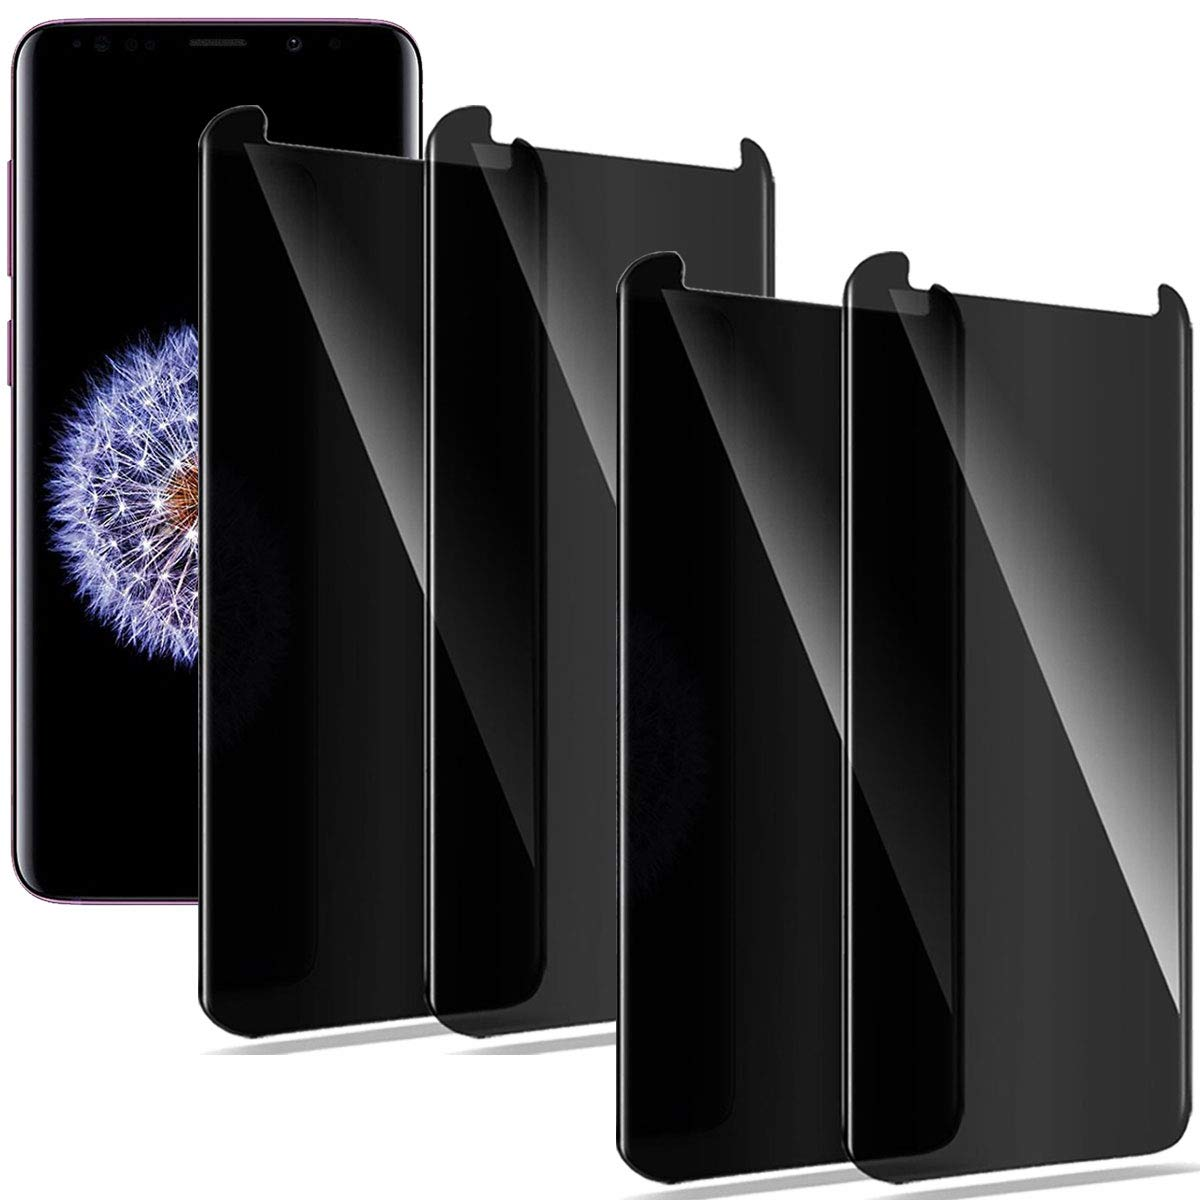 Compatible for Samsung Galaxy S8 Plus (Not for S8) Screen Protector Privacy Anti-Spy, Moresky S8+ Tempered Glass 3D Curved Edge Case Friendly Film (4 pcs) by Moresky (Image #1)